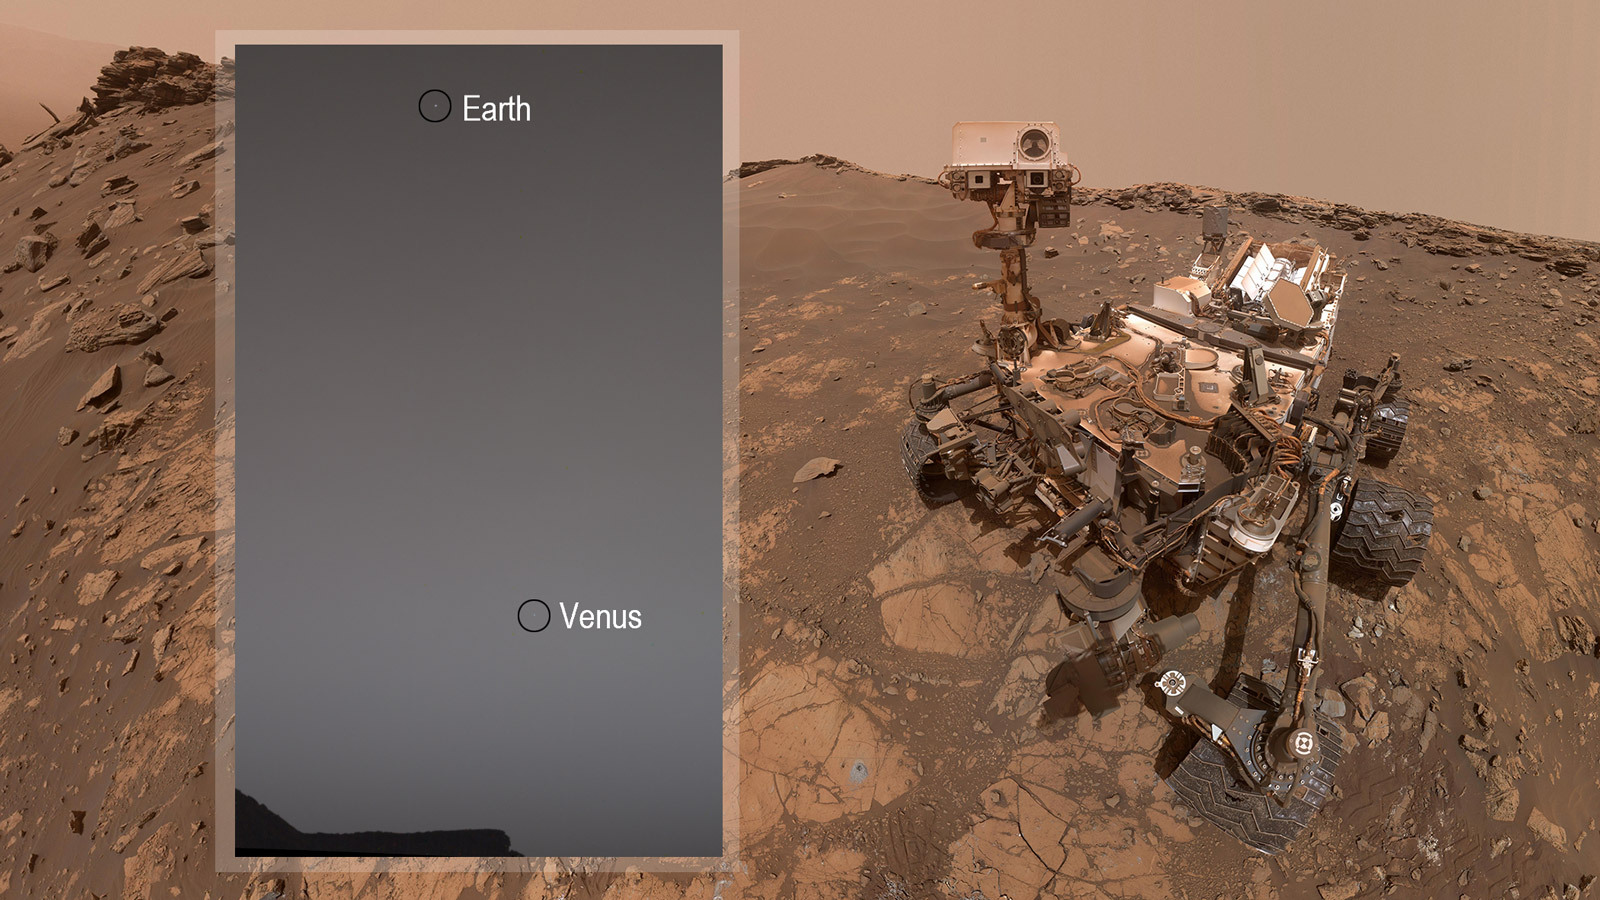 Earth and Venus as seen by the Mast Camera aboard NASA's Curiosity Mars rover